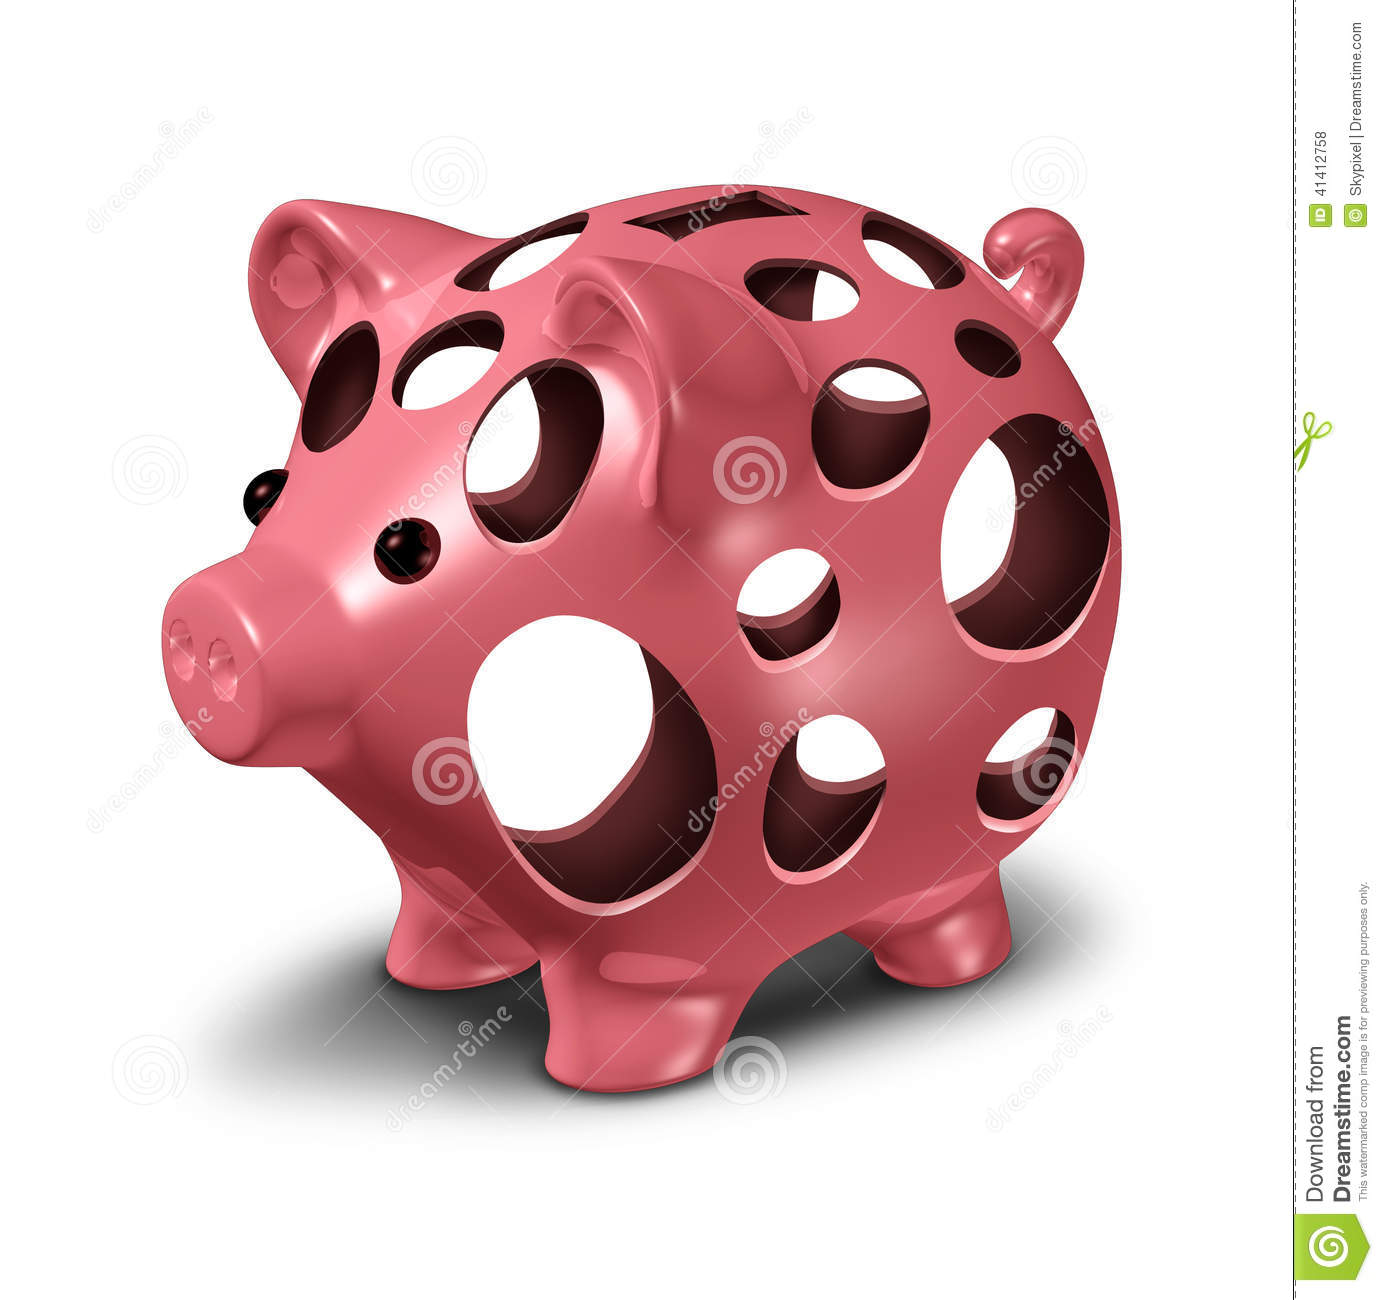 how to cut a hole in a piggy bank